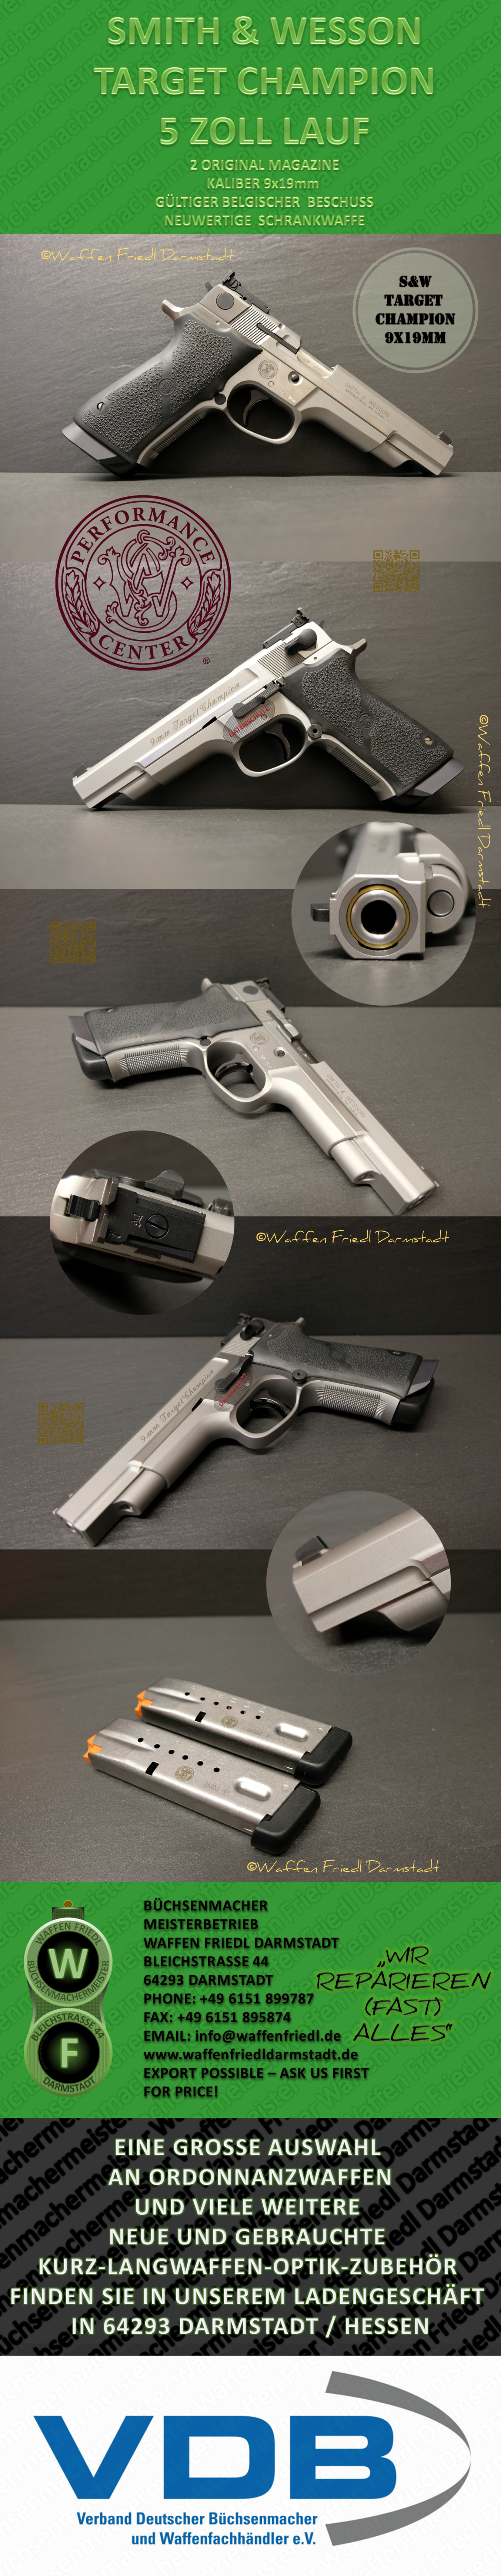 SMITH & WESSON TARGET CHAMPION 9x19mm